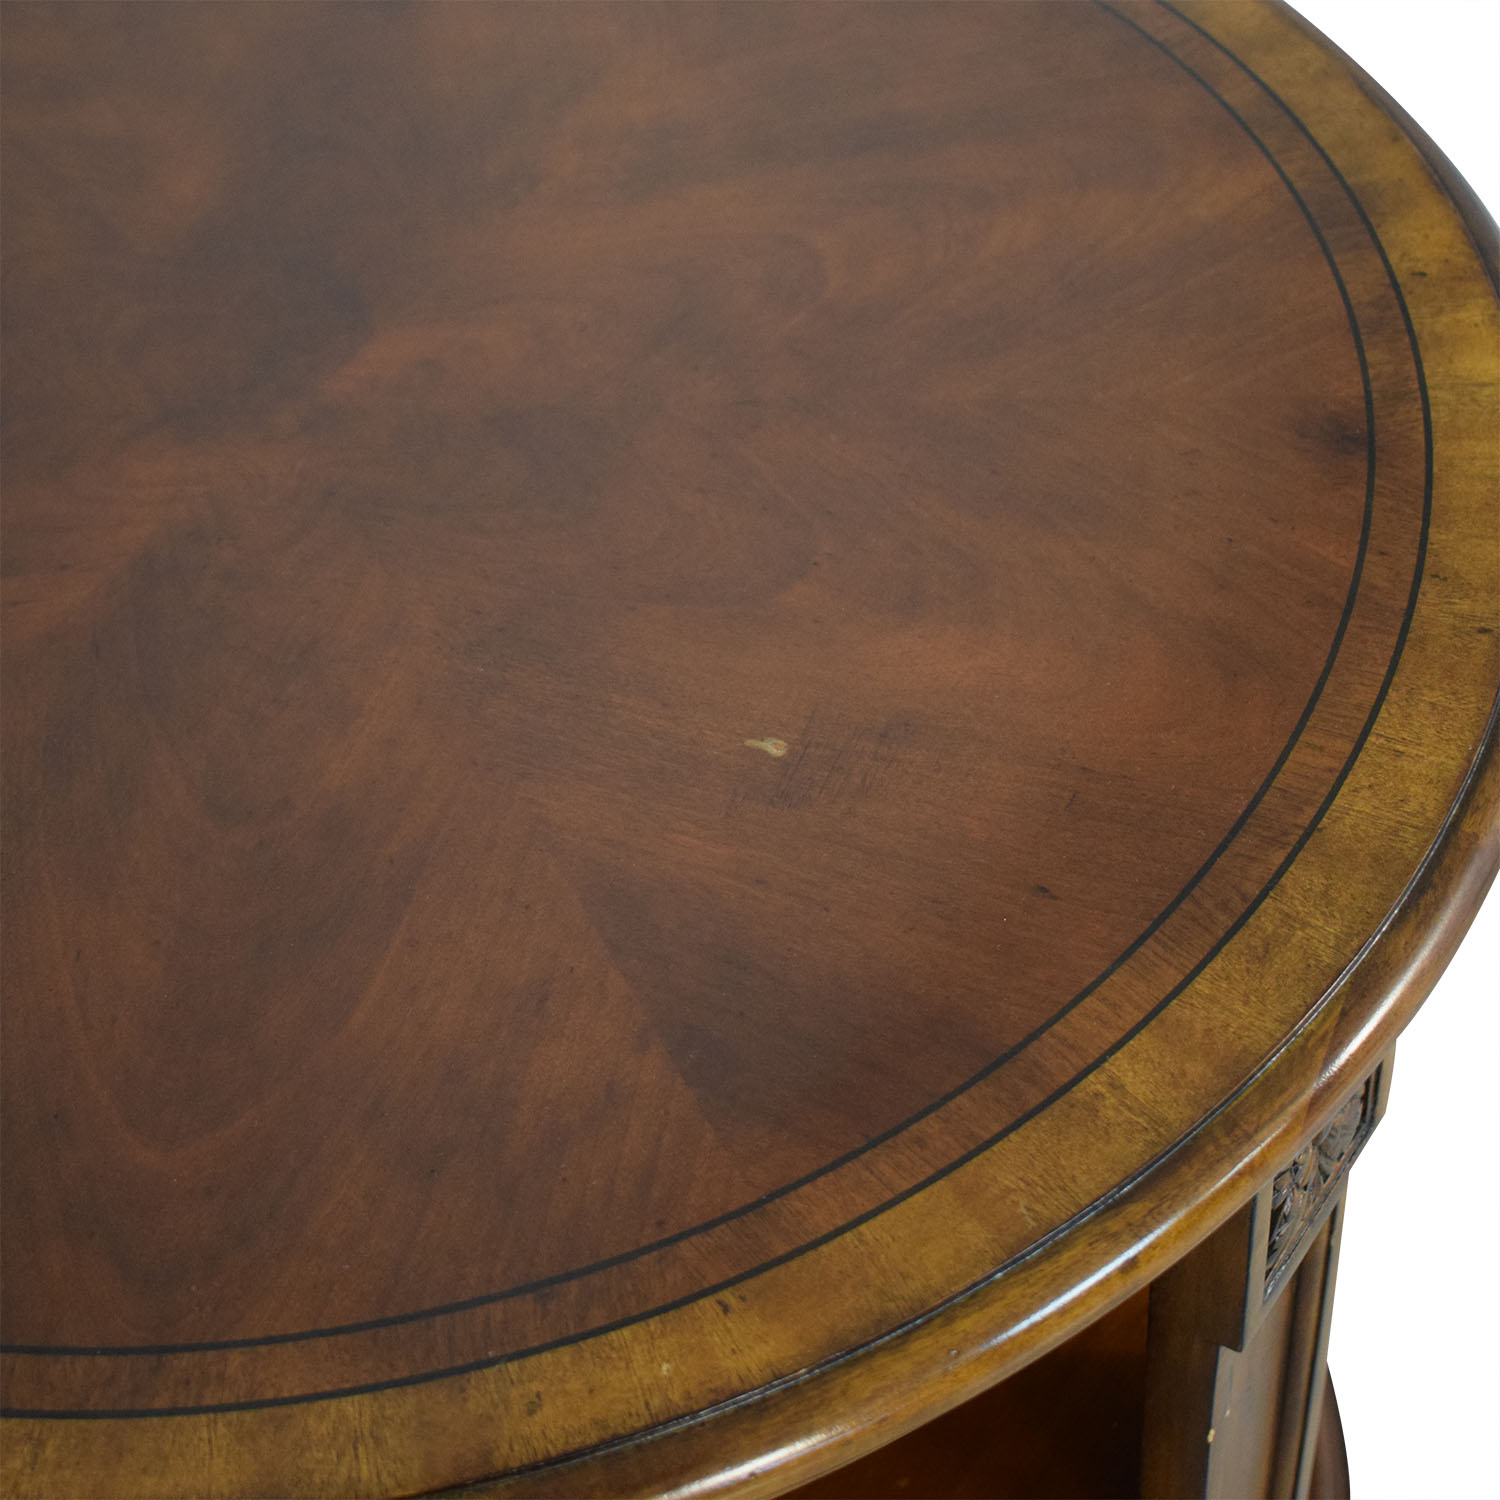 Ethan Allen Ethan Allen Library Table used